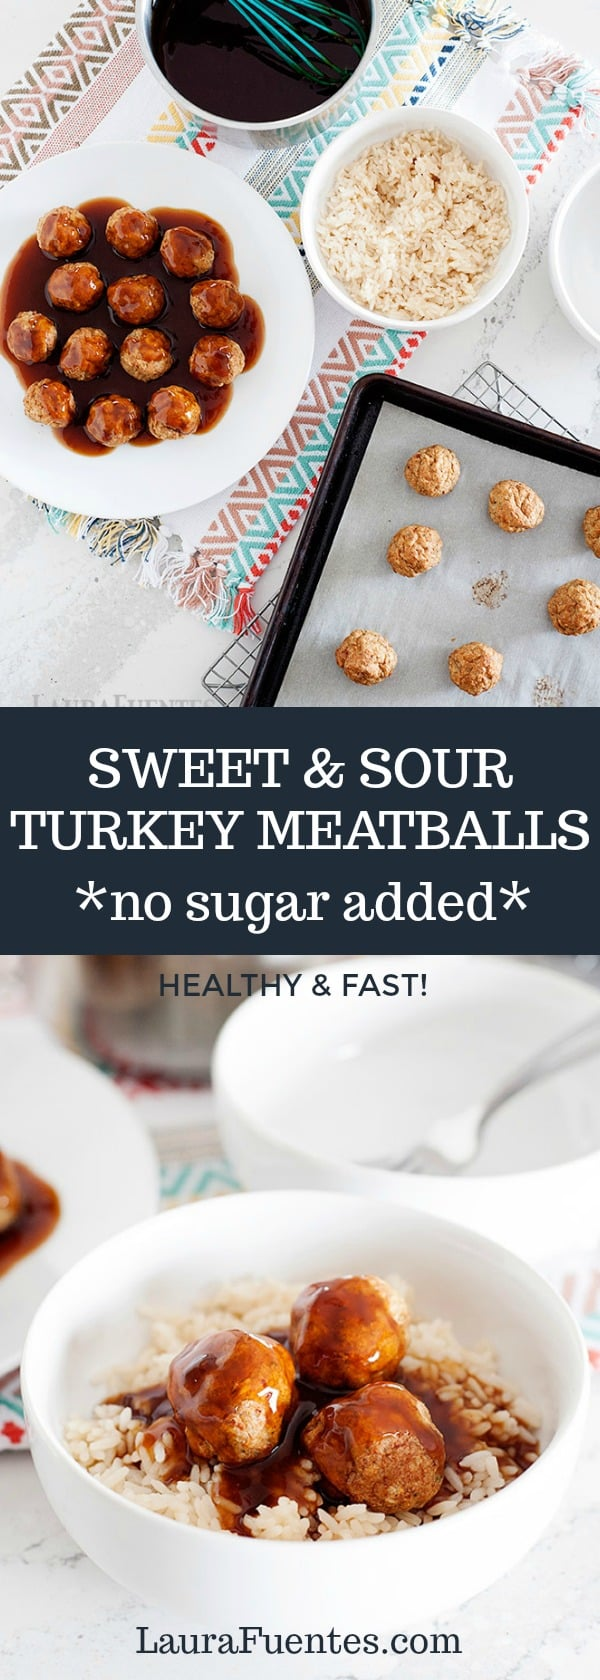 This sweet and sour meatball recipe is easy to make without adding sugar! It can be made in the slow cooker or the oven. Whole30 recipe (omit the breadcrumbs)